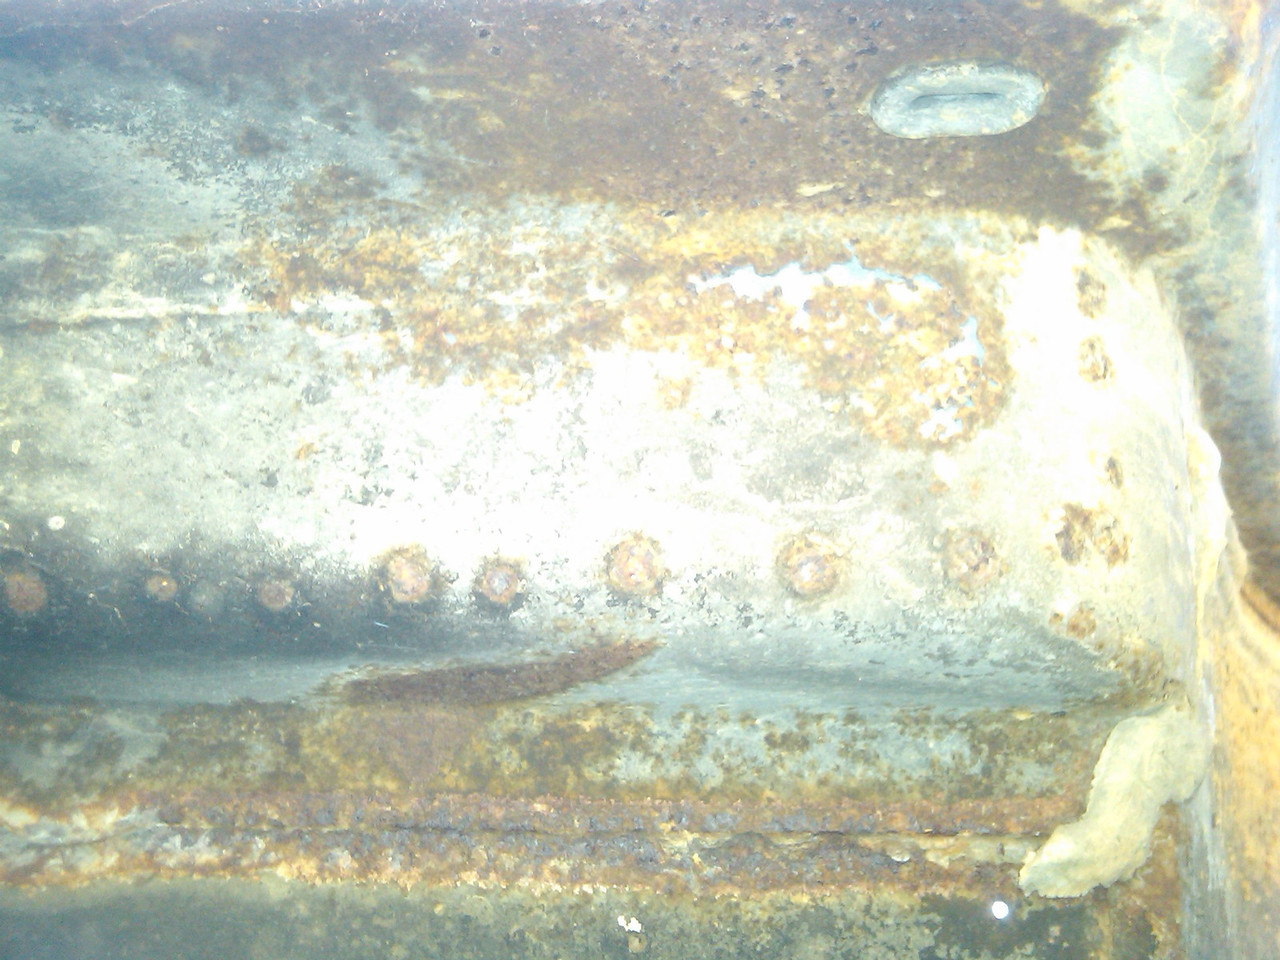 Beneath the Driver's side footwell. Rust penetration visible in both directions. Klassic Fab reproduces this section, possible cut and weld replacement?